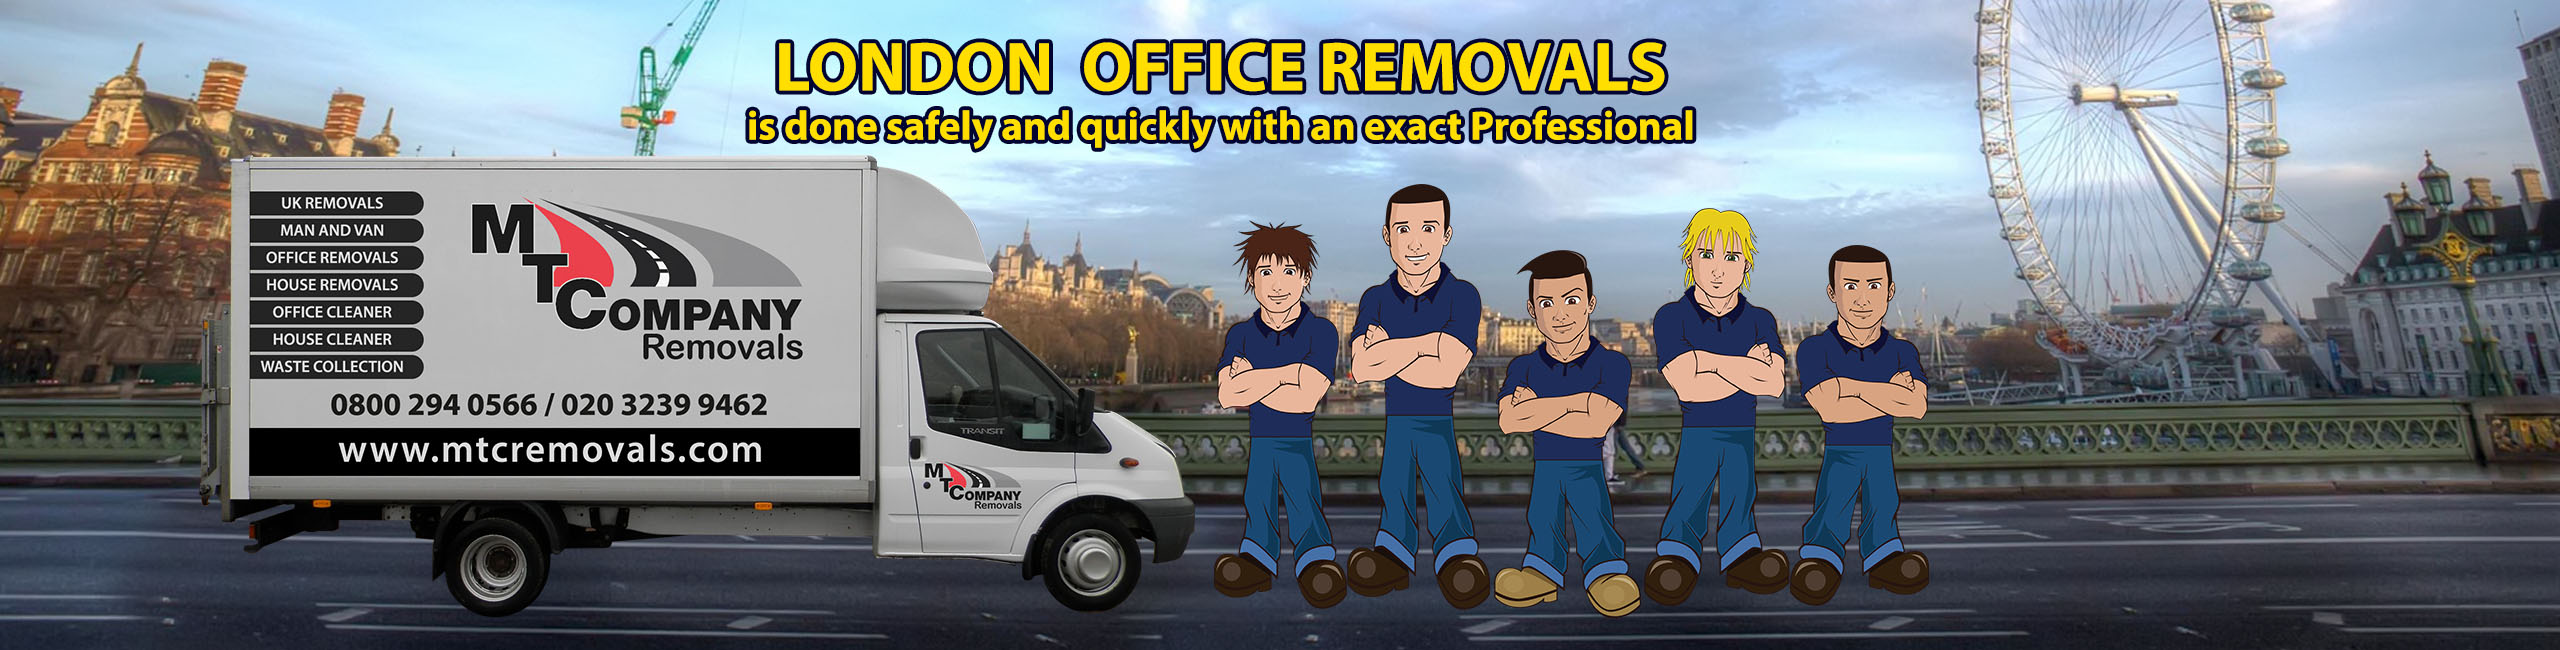 london office removal company